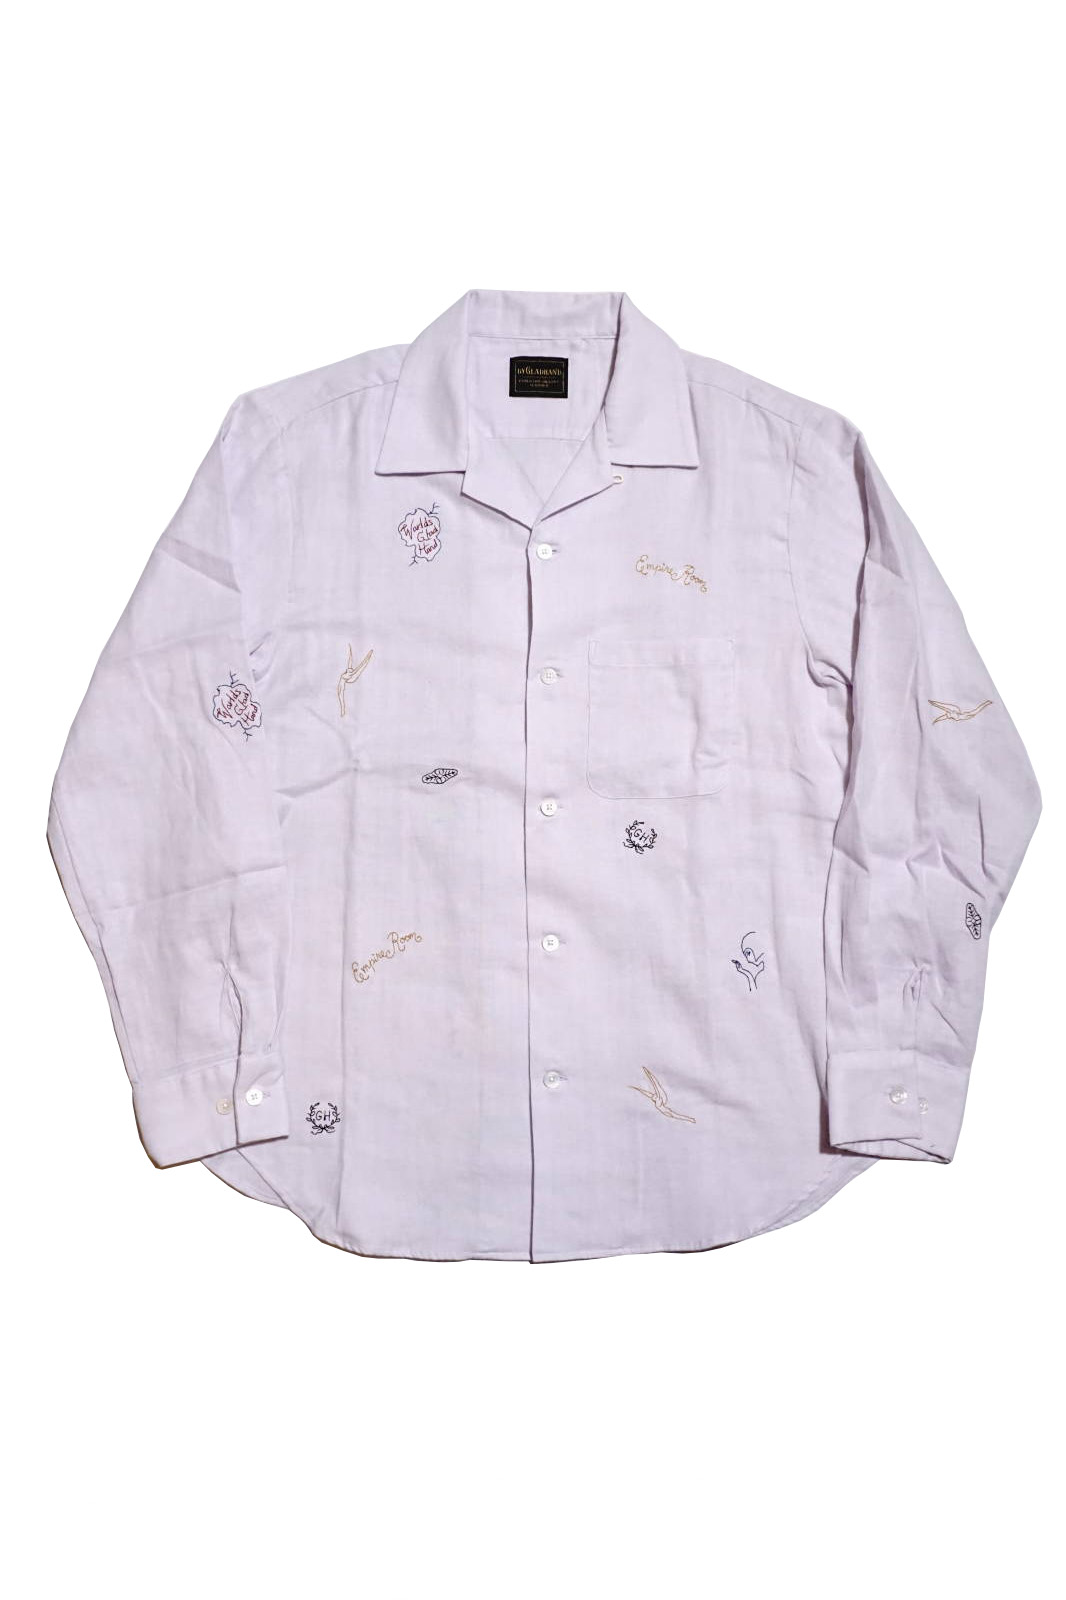 BY GLAD HAND EMPIRE ROOM - L/S SHIRTS LAVENDER